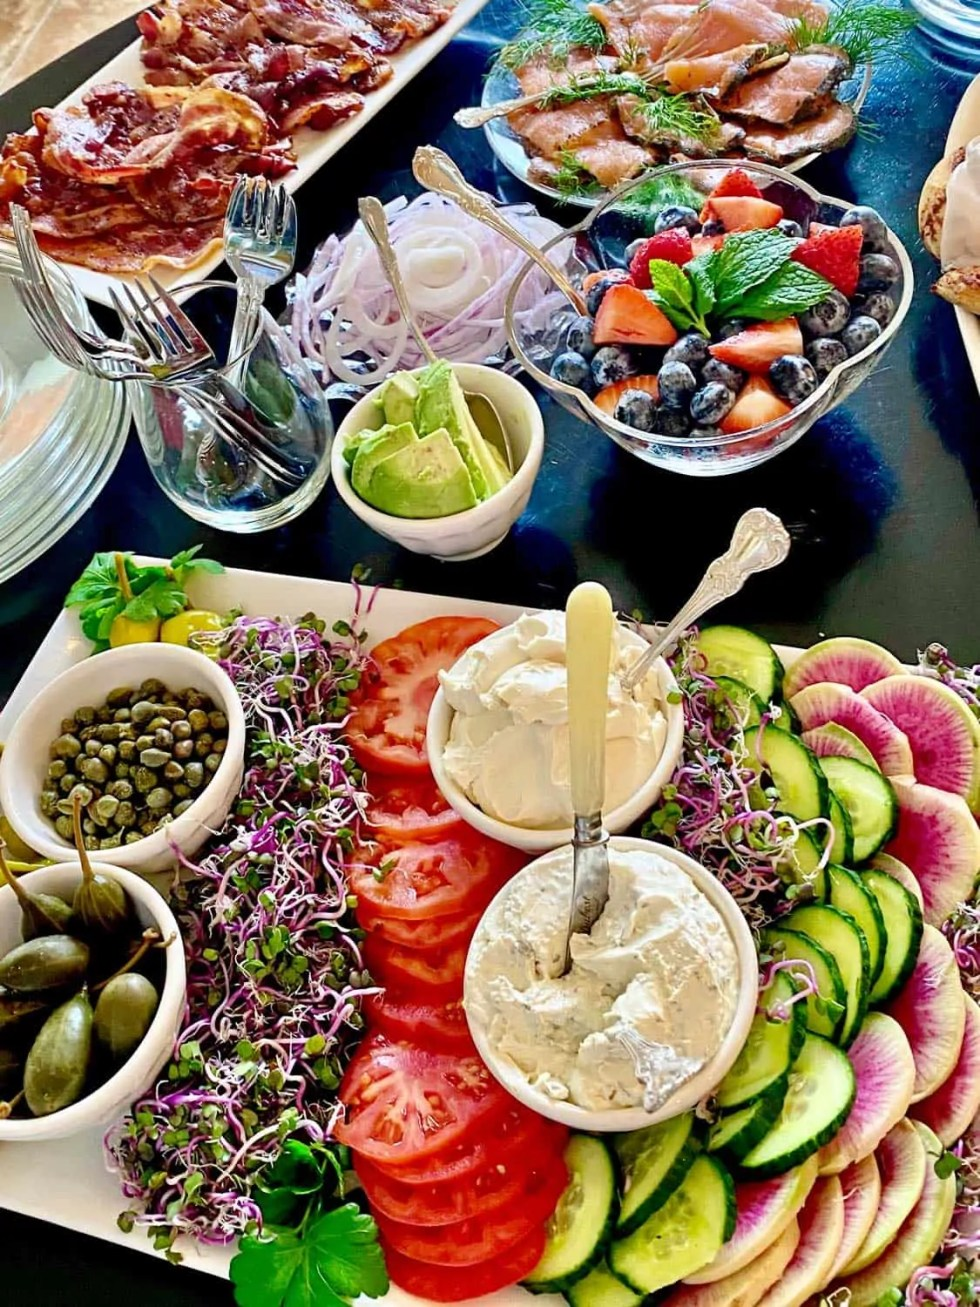 Bagels and Cream Cheese Buffet for Christmas Family Brunch